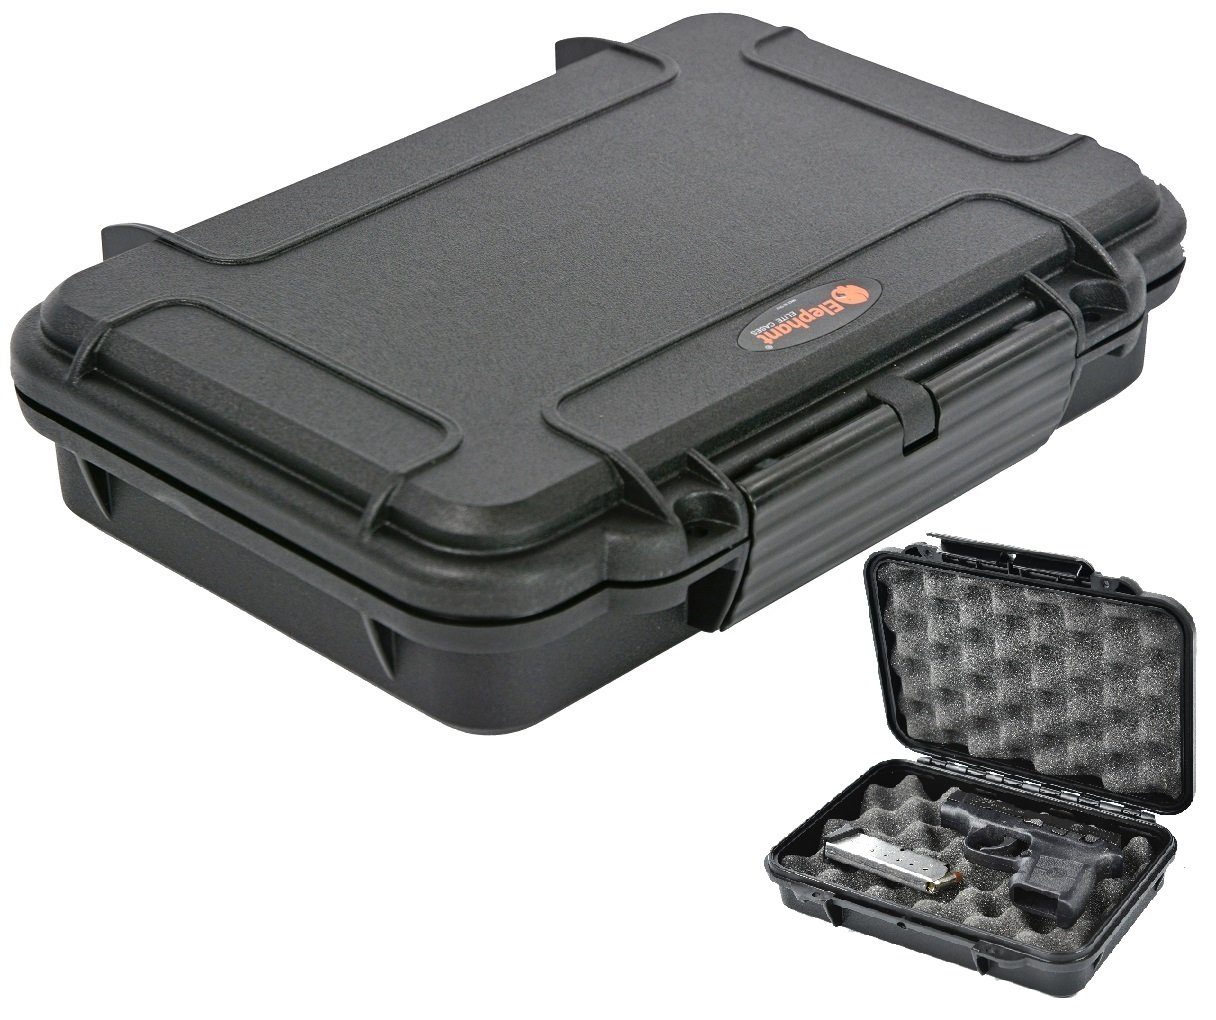 Pistol Case Handgun case Elephant Elite EL008 with Convoluted Foam Waterproof Concealed Carry for Any Gun of 8 Length by 5.25 Height Or Smaller. Elephant Cases